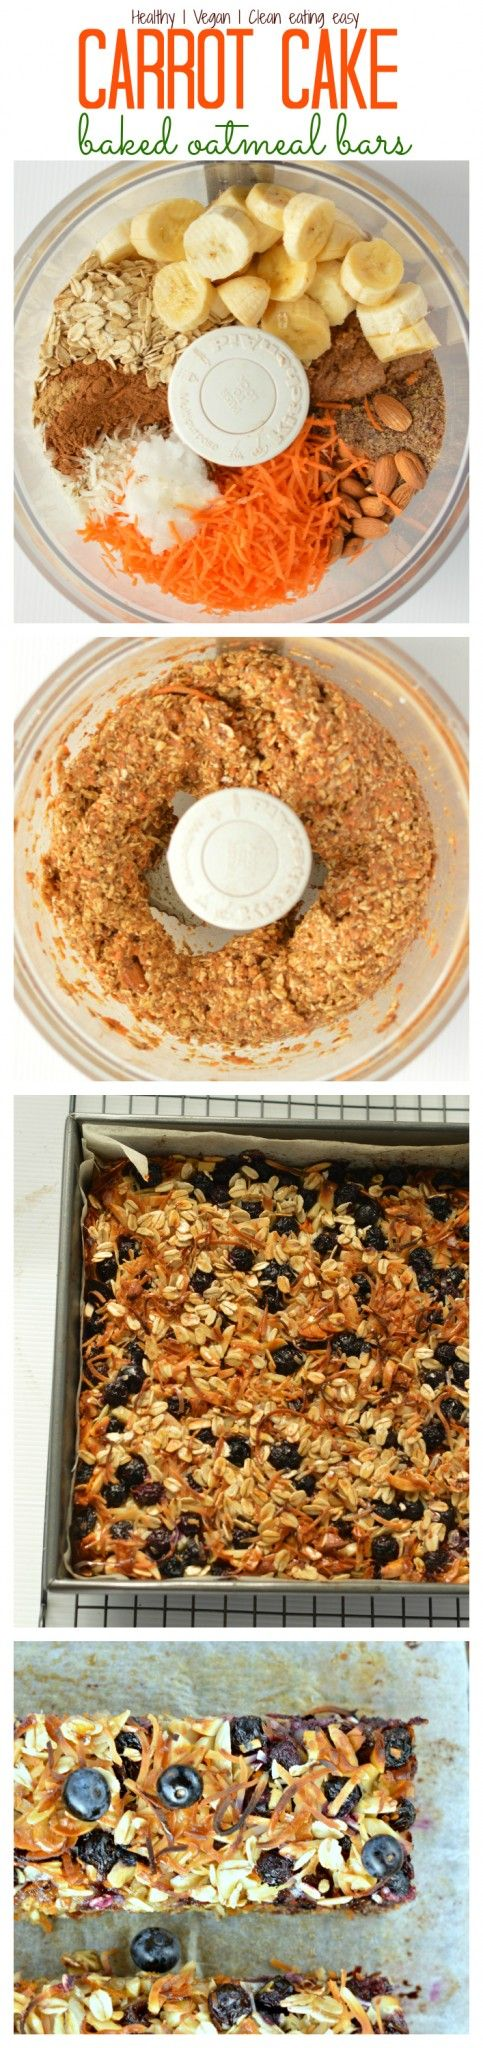 Healthy On-The-Go Breakfast | Make-ahead in 30 min, one-bowl recipe| Carrot Cake Oatmeal Bars with Flaxmeal & blueberries